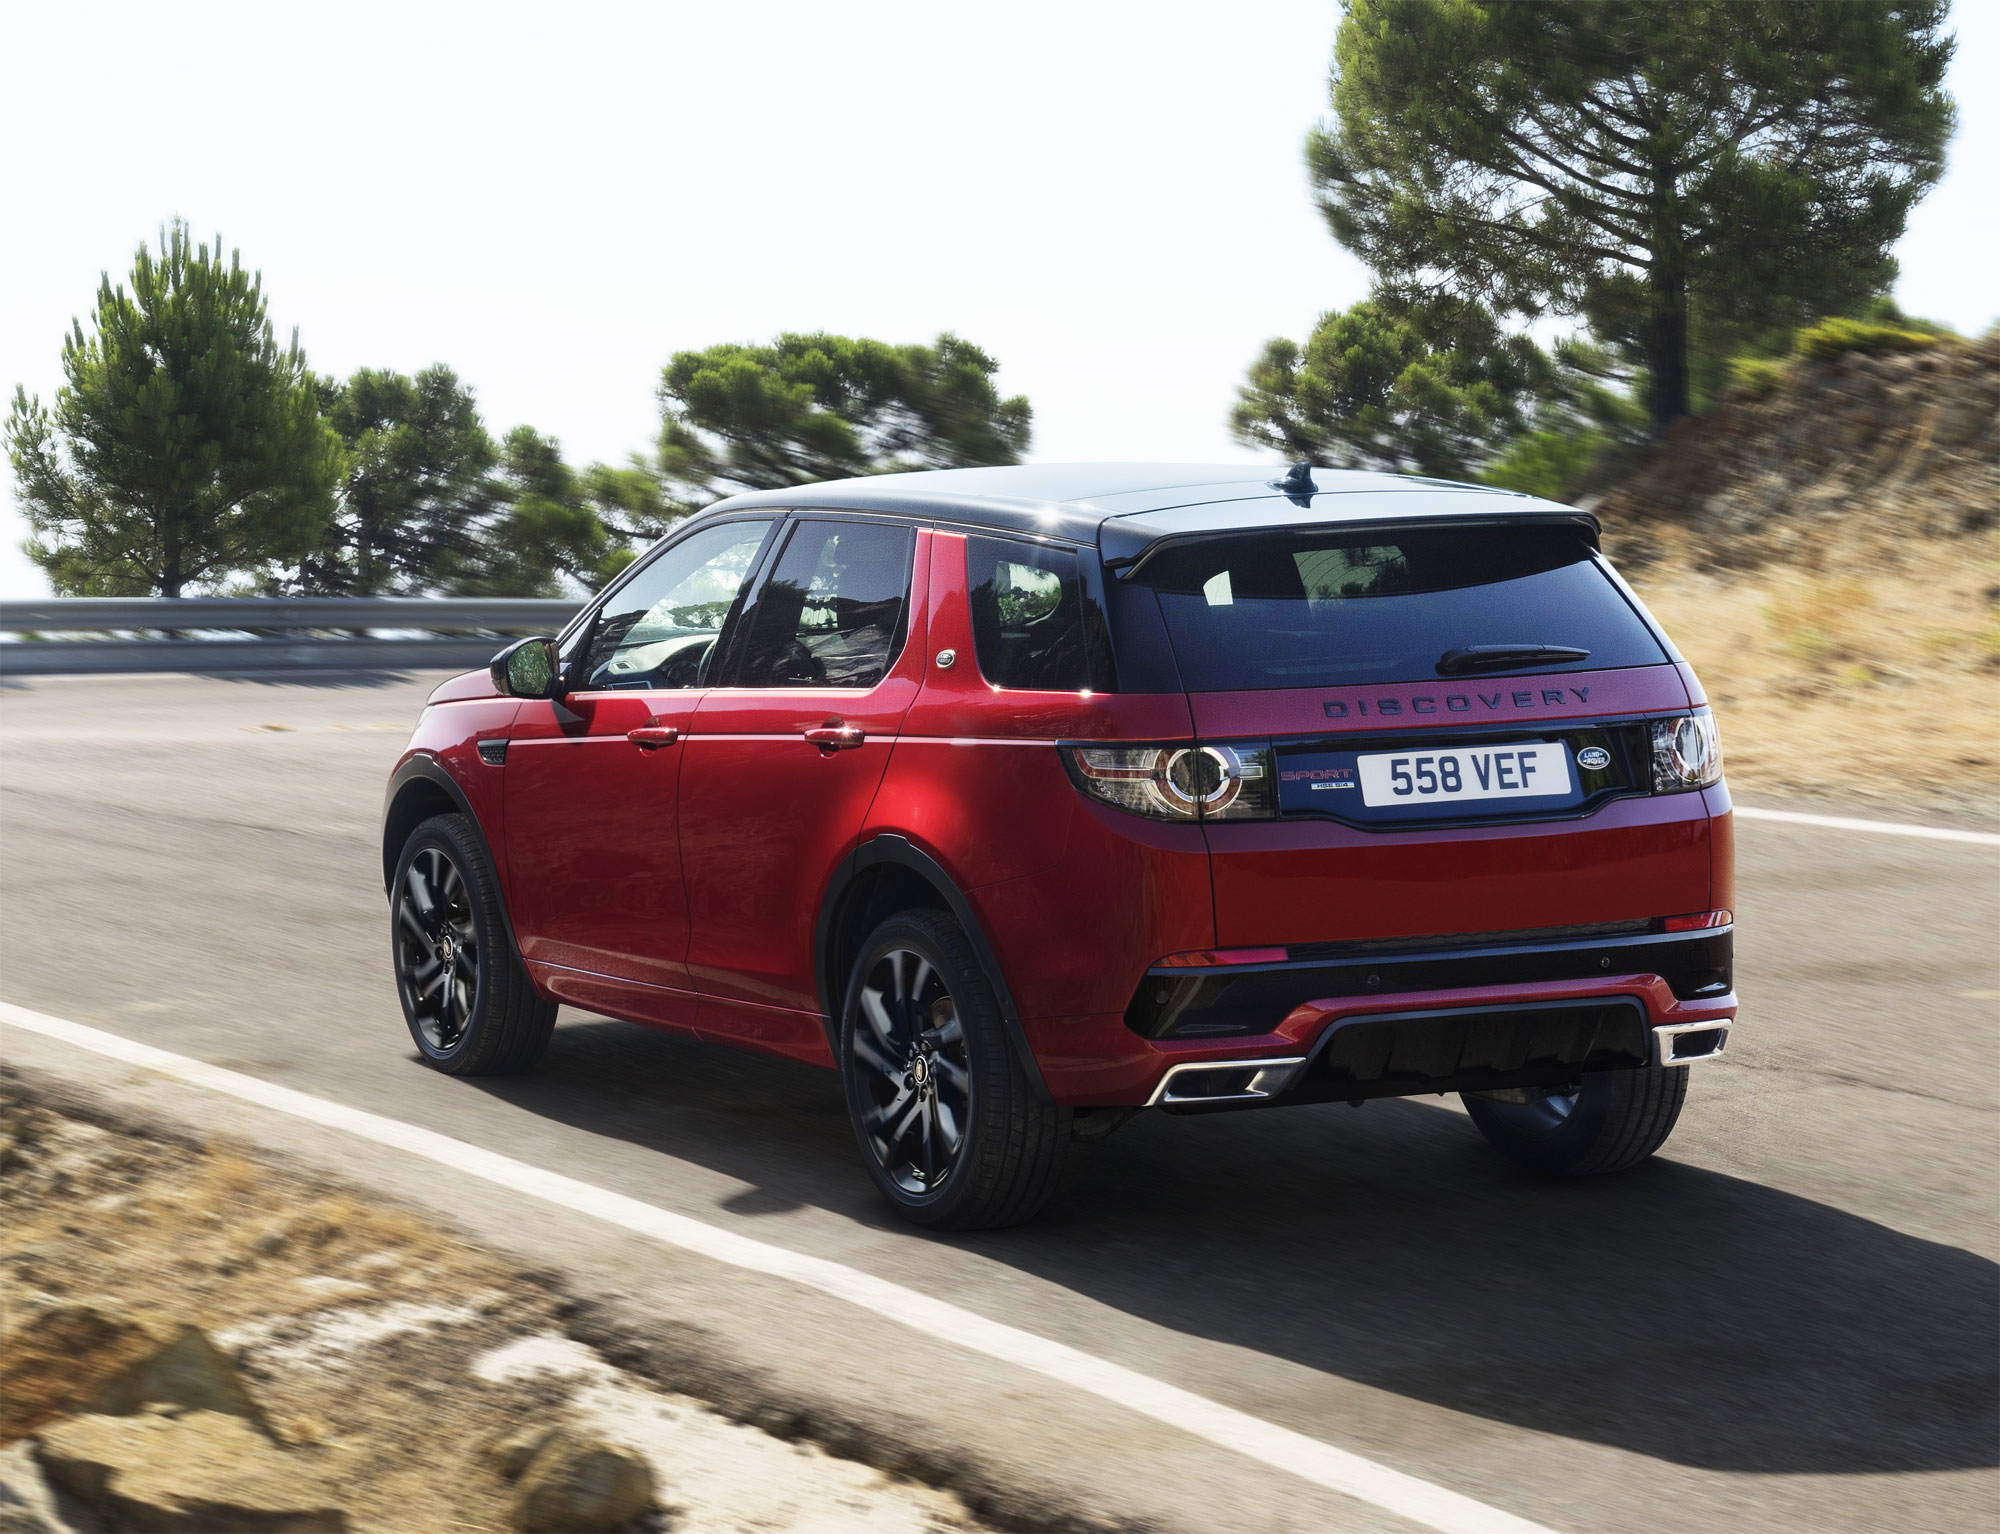 https://www.luxuriousmagazine.com/wp-content/uploads/2015/09/Land-Rover-Discovery-Sport-HSE-Dynamic-Lux-2.jpg